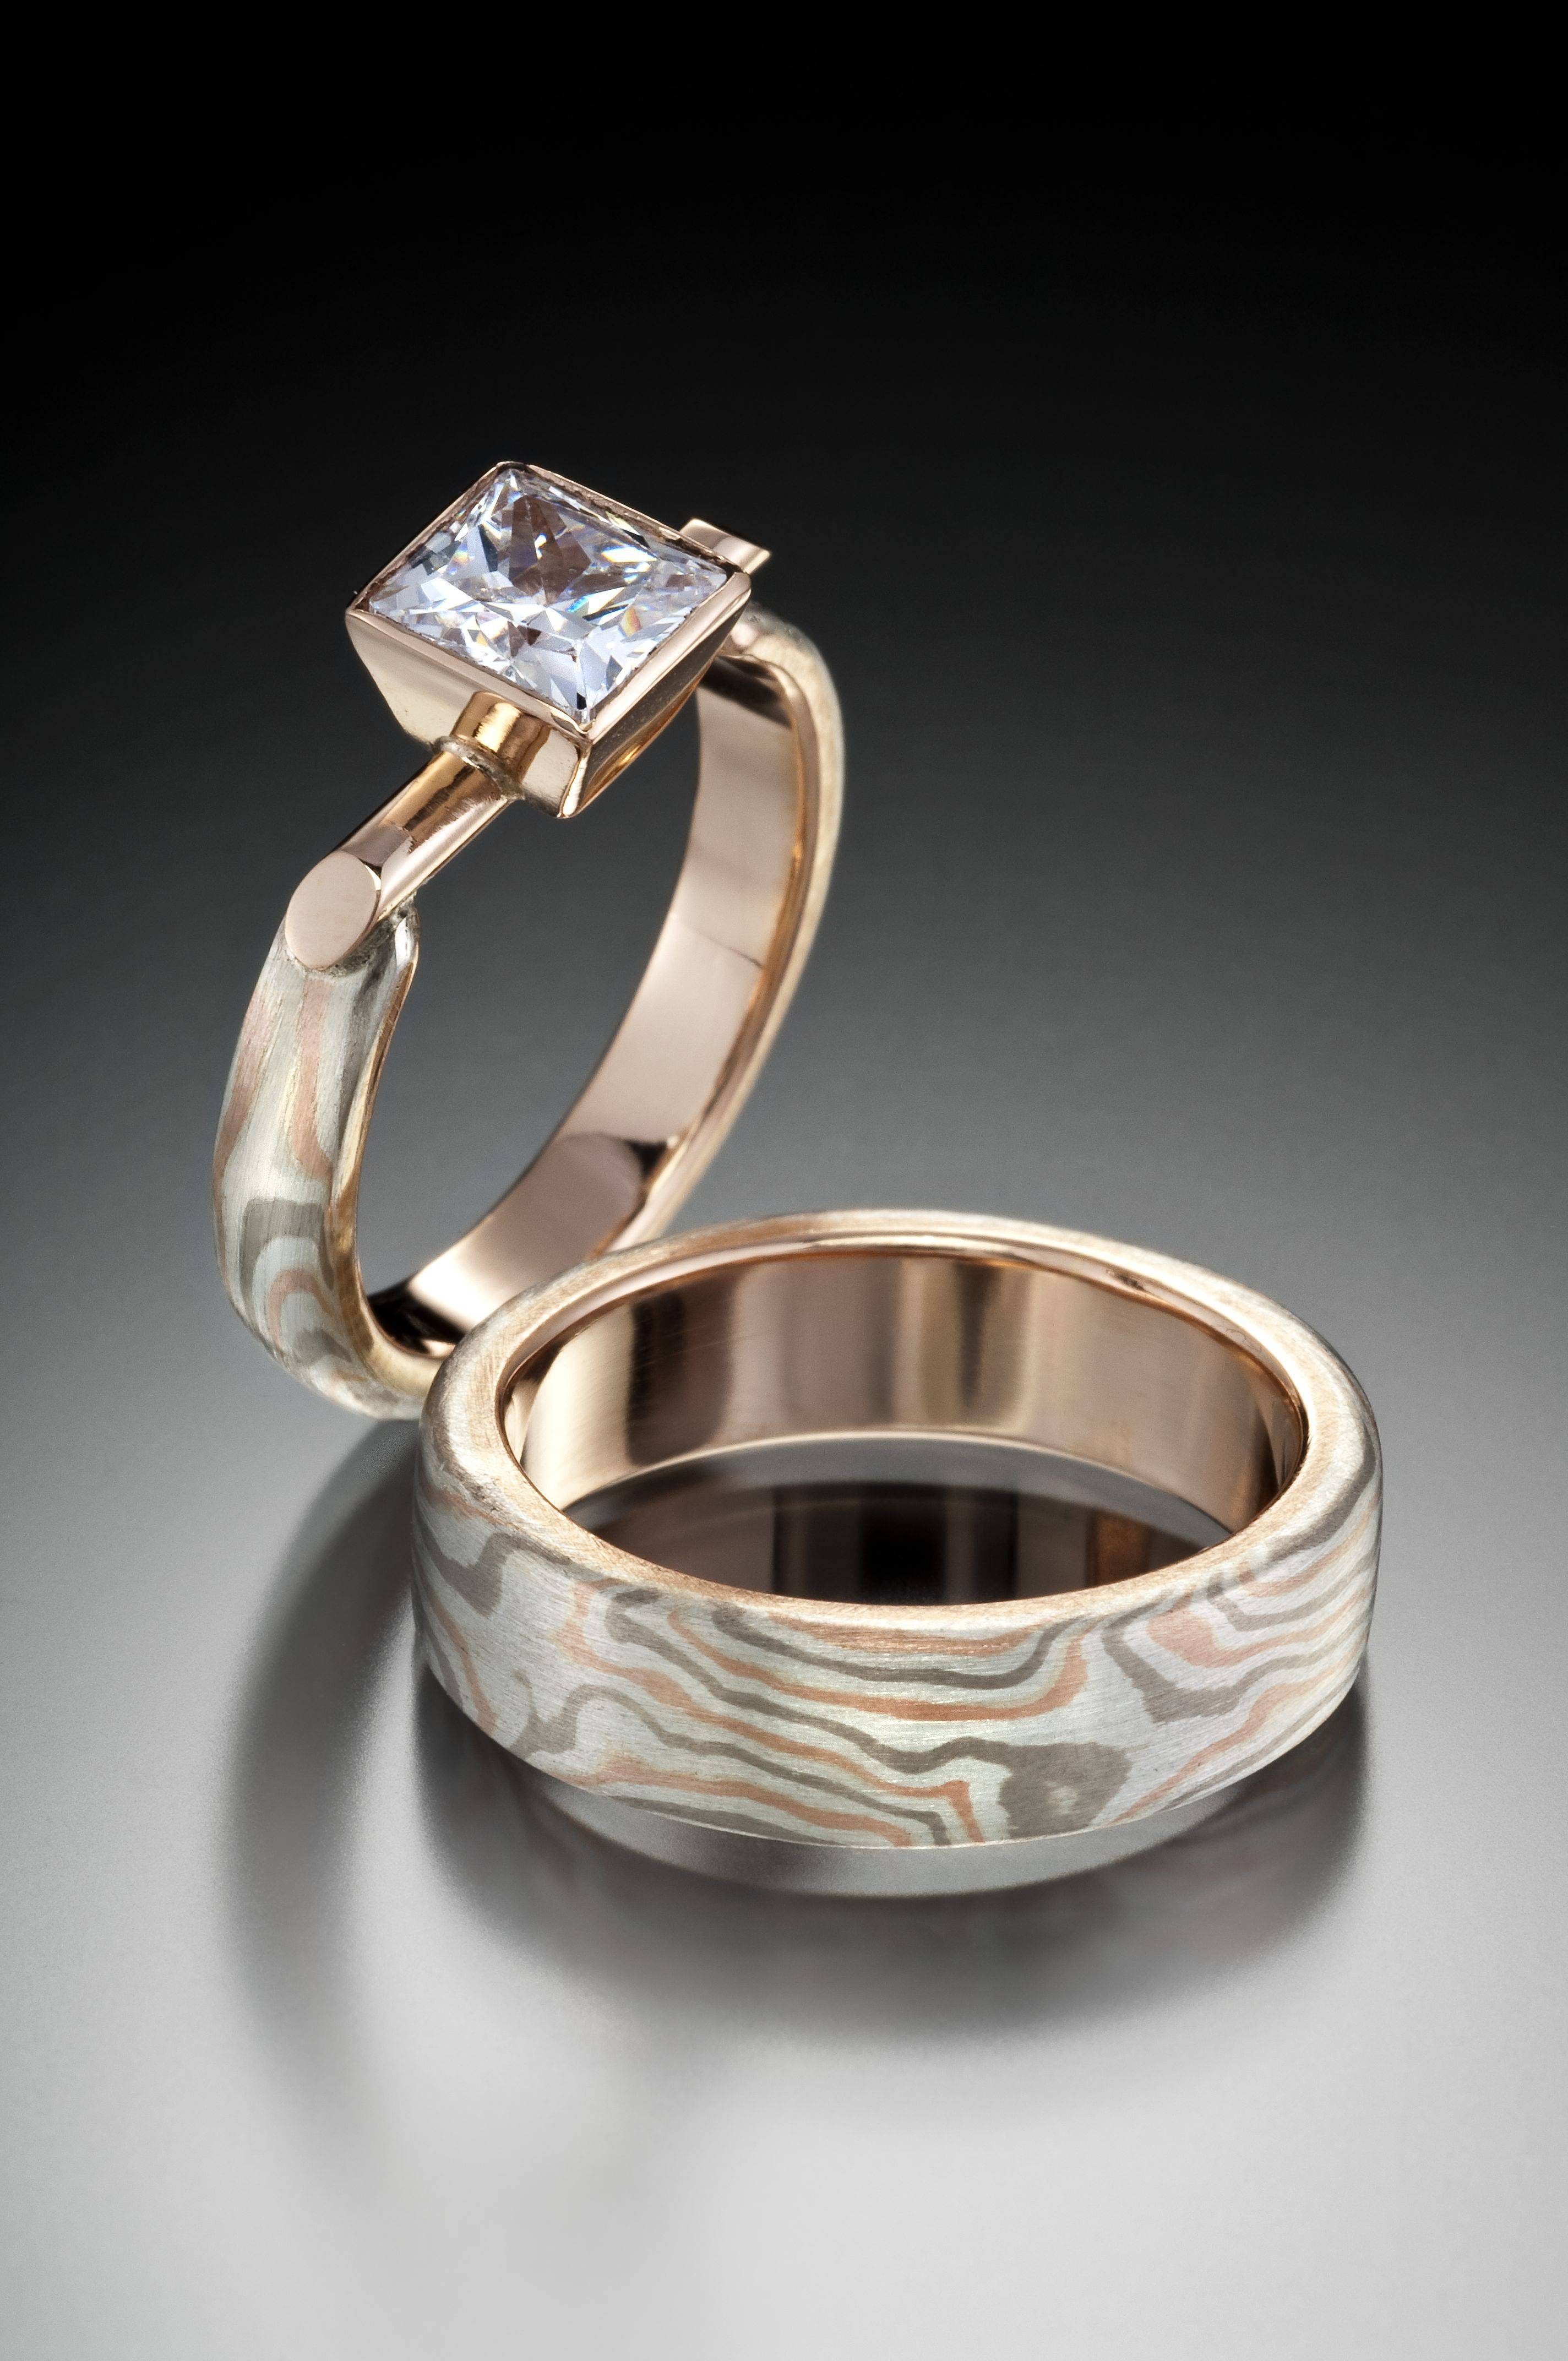 Modern Wedding Rings | Wedding Corners Within Contemporary Wedding Rings (View 11 of 15)